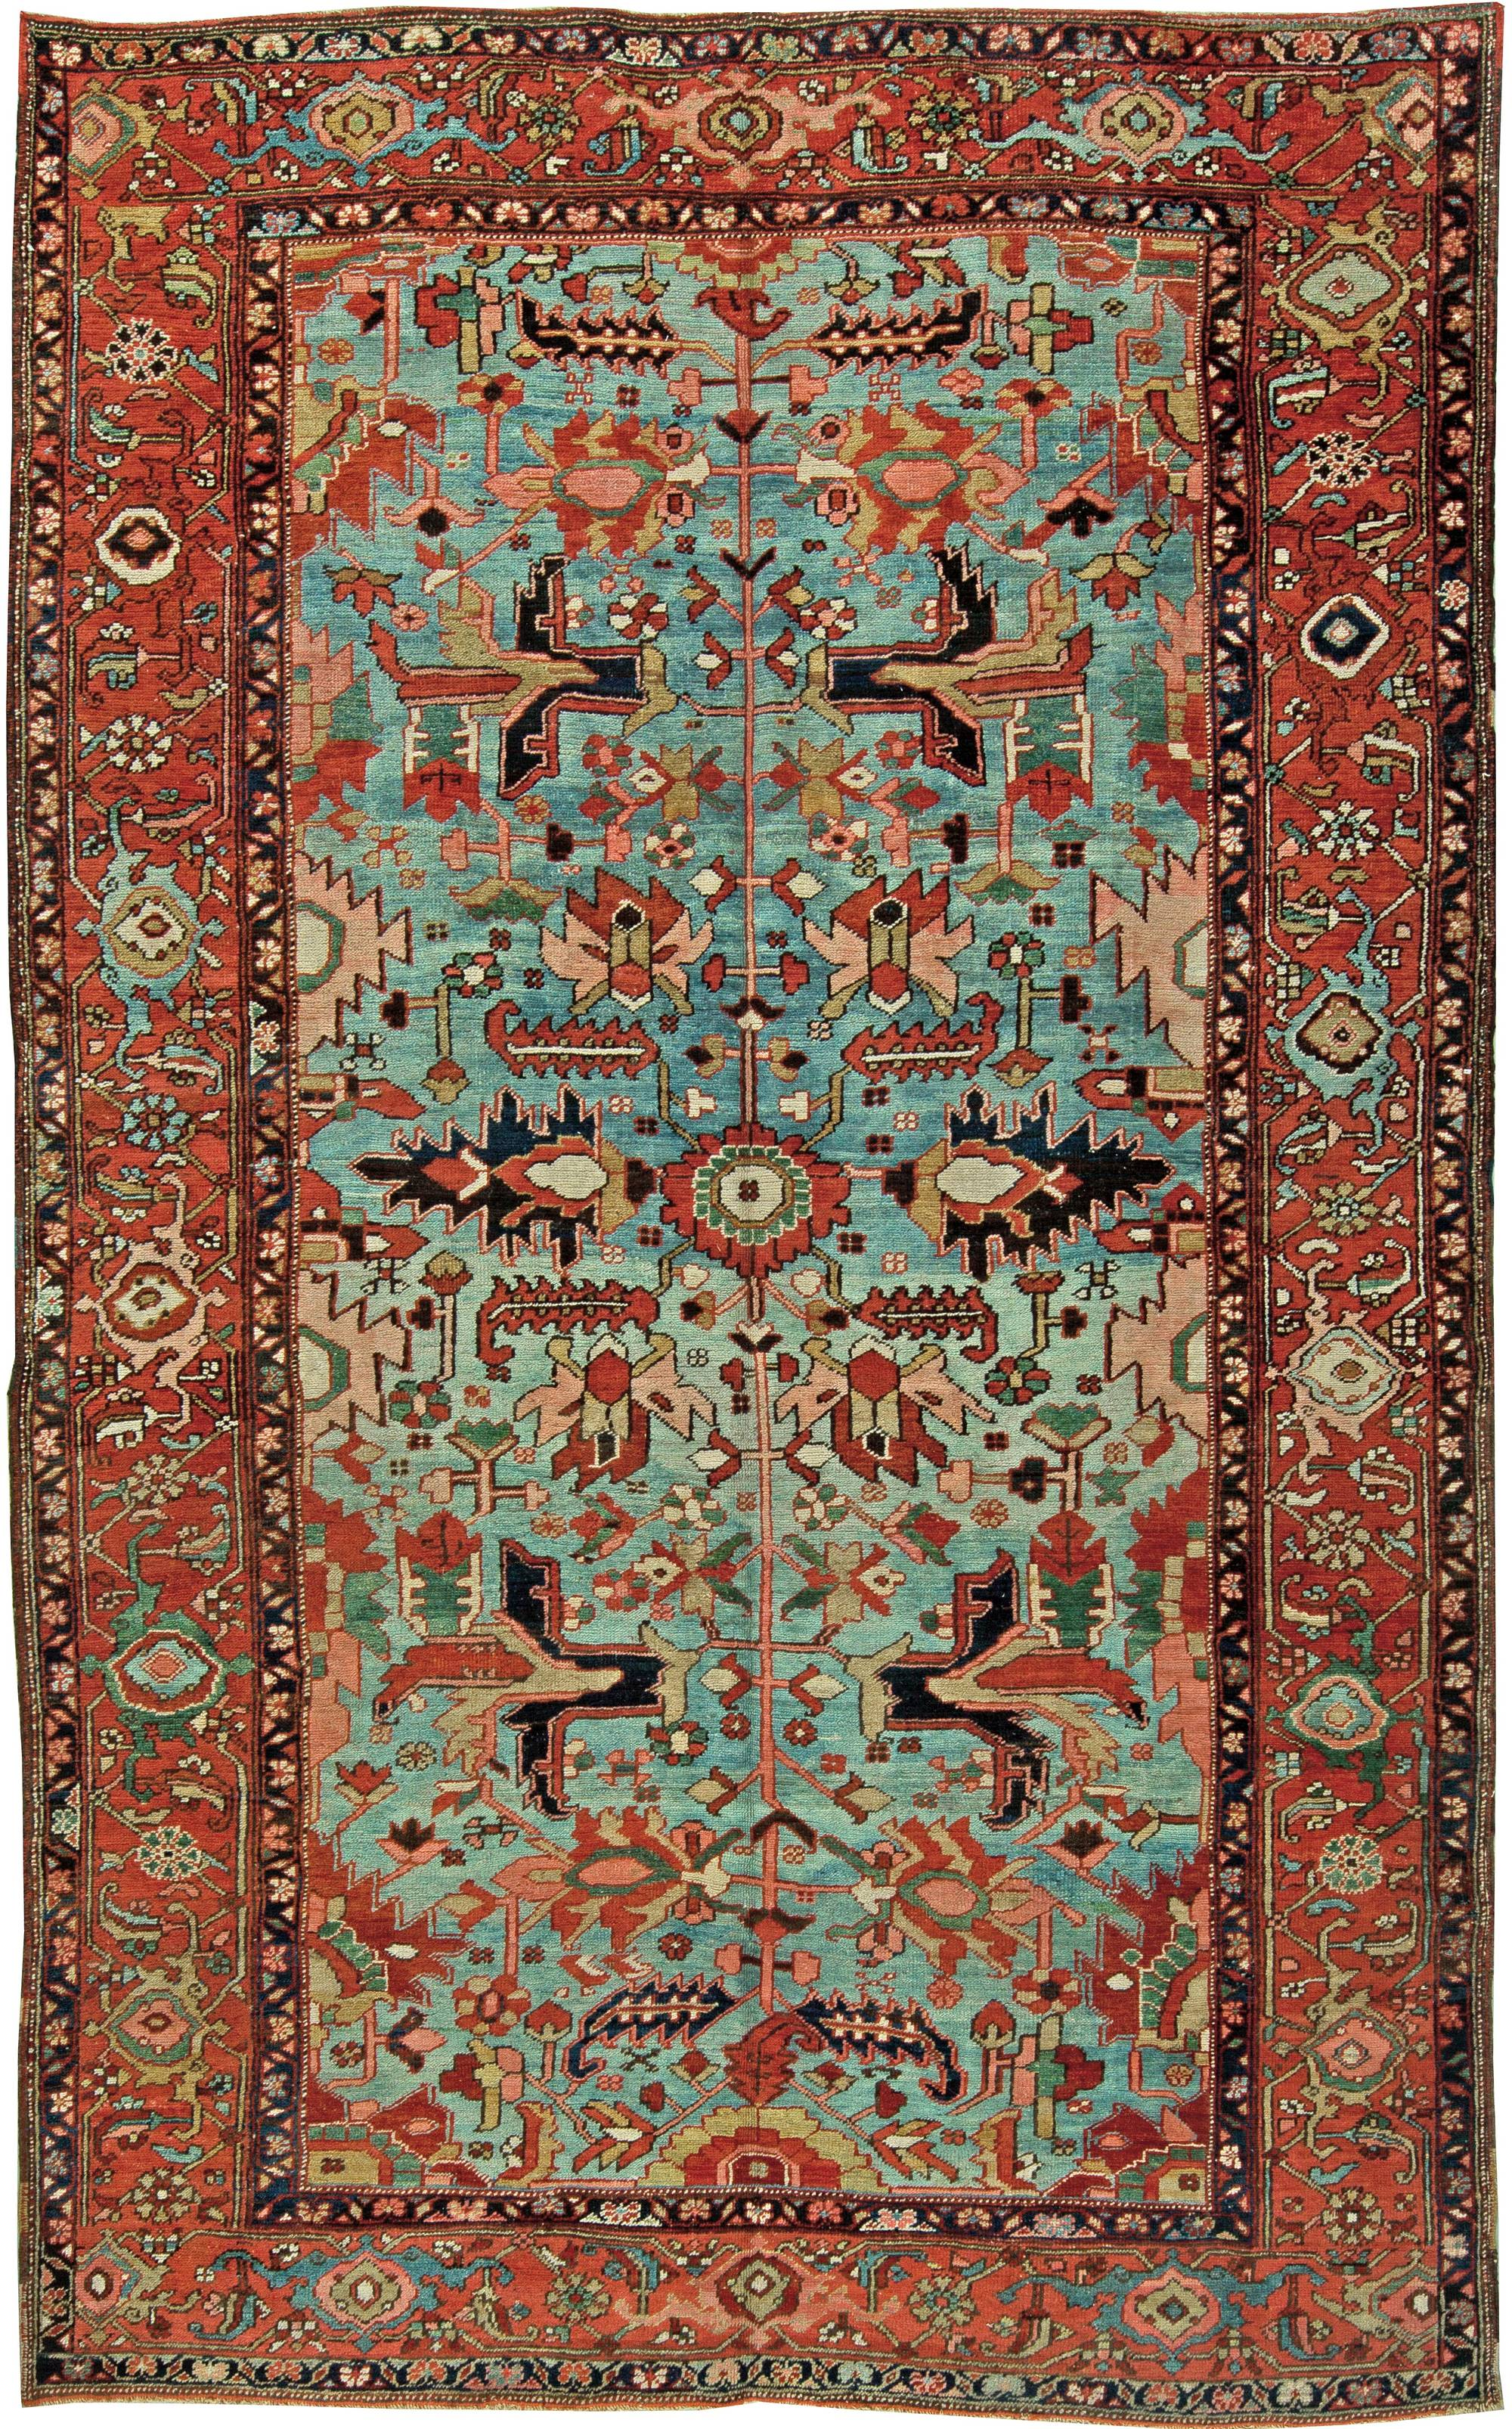 Oriental rugs ancient northwestern persian rugs and their beauty XSCYYXR